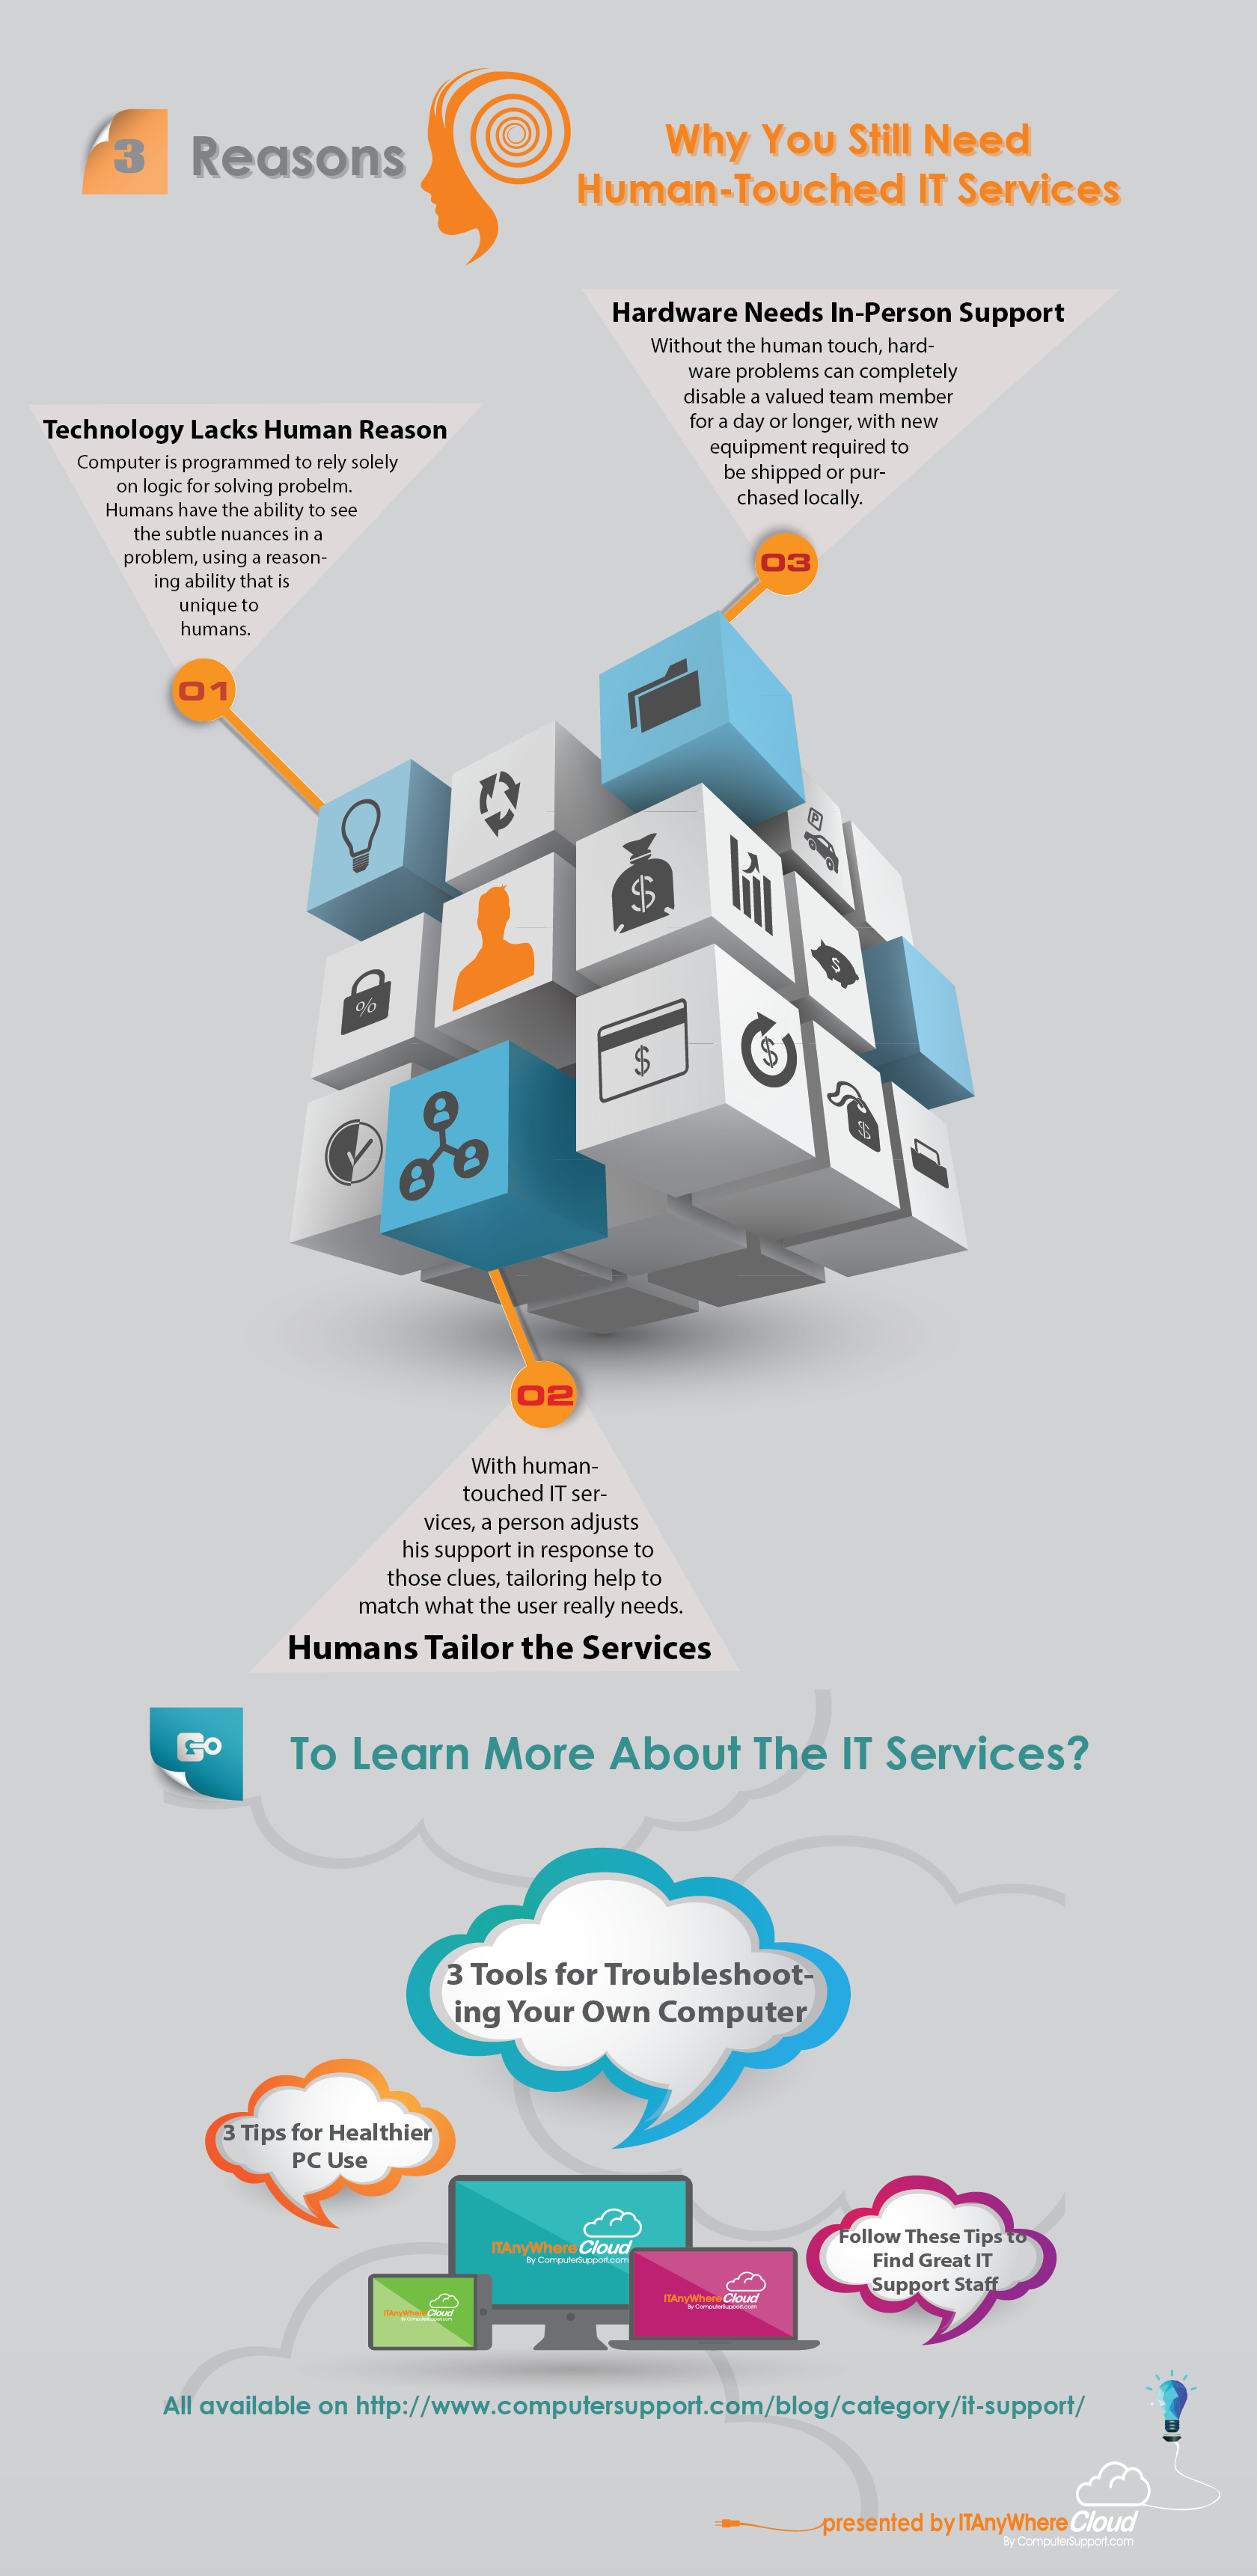 Human-touched IT services_Sep 22, 2014